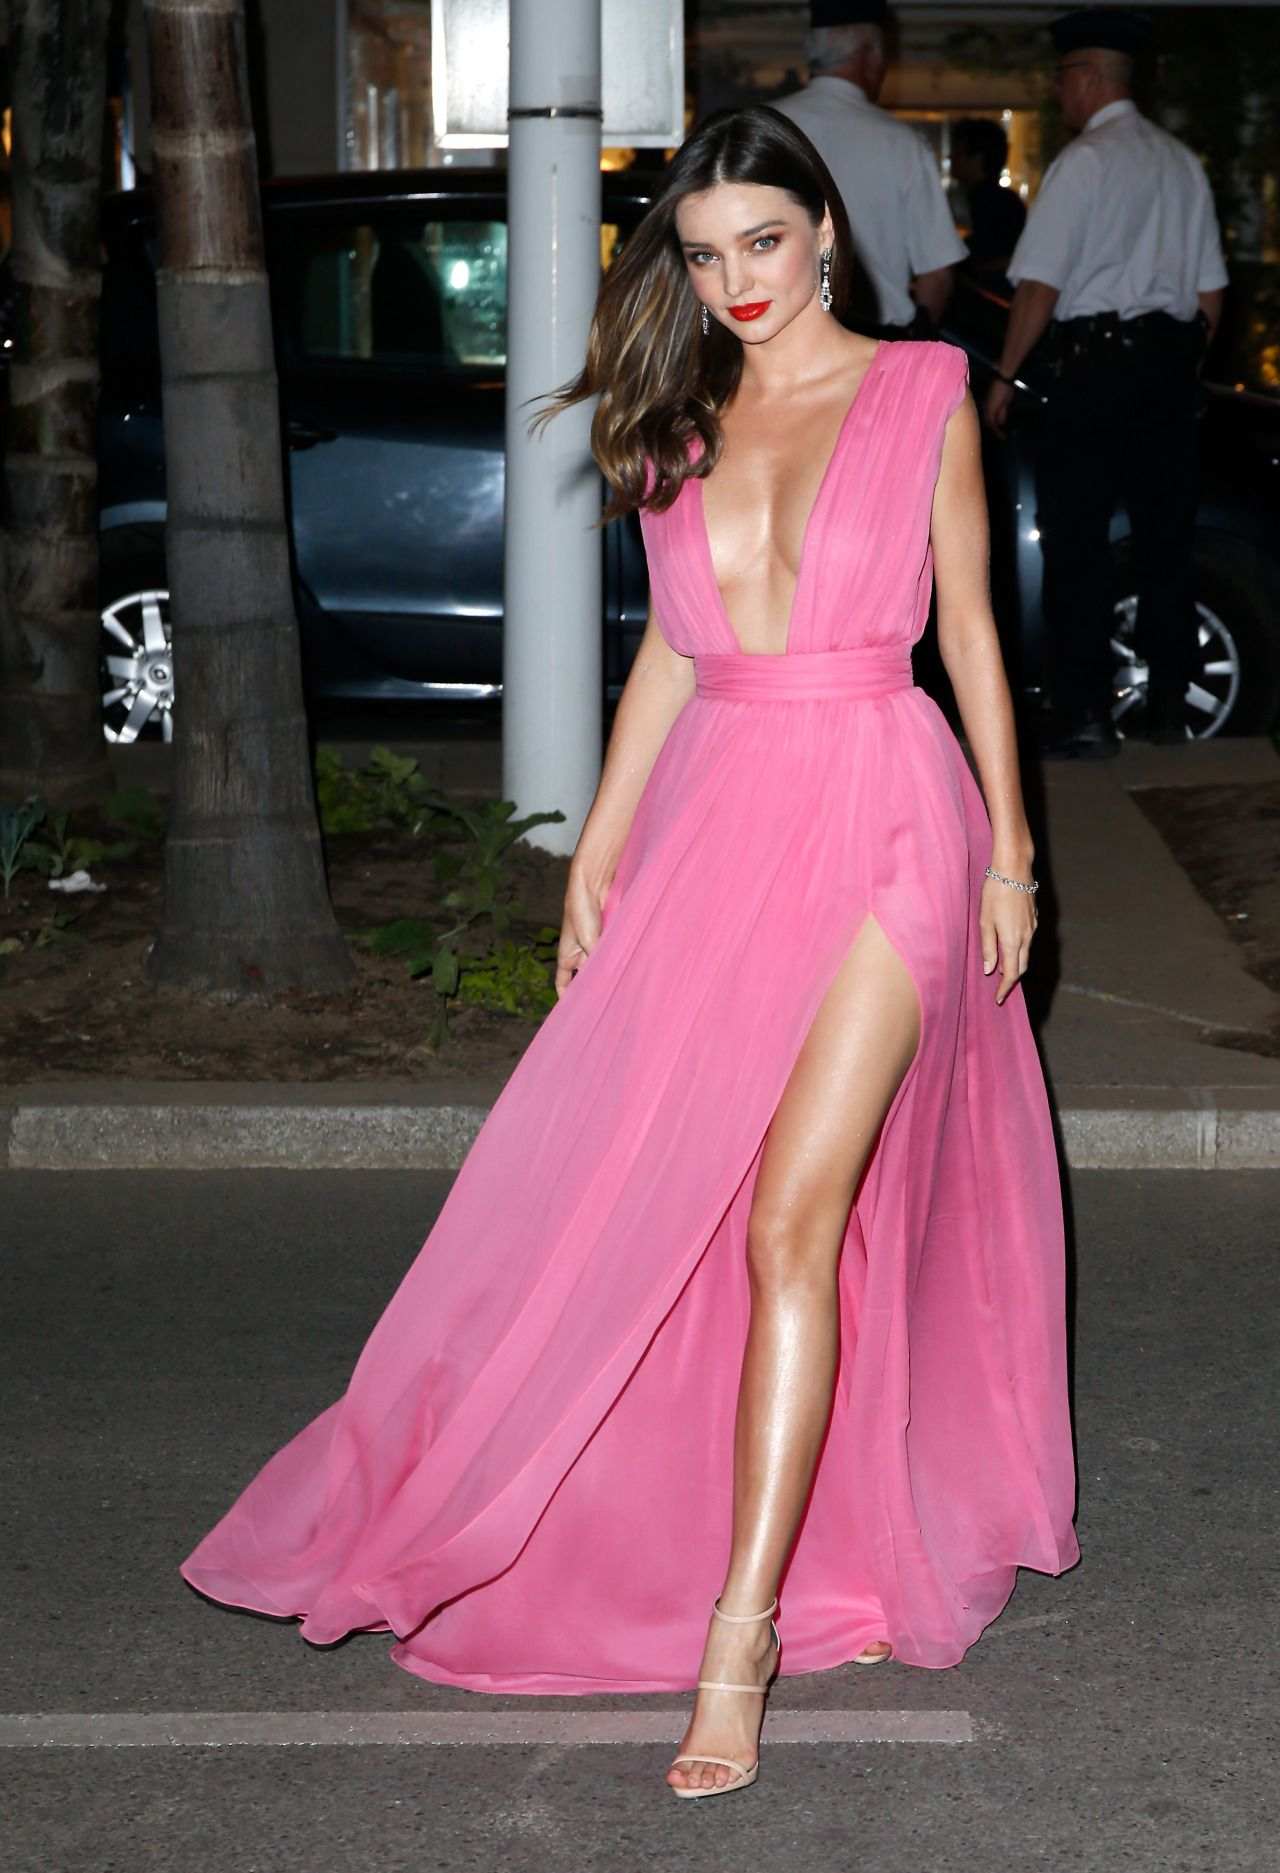 Best dressed at Cannes: Miranda Kerr | Celebrity Style | Pinterest ...